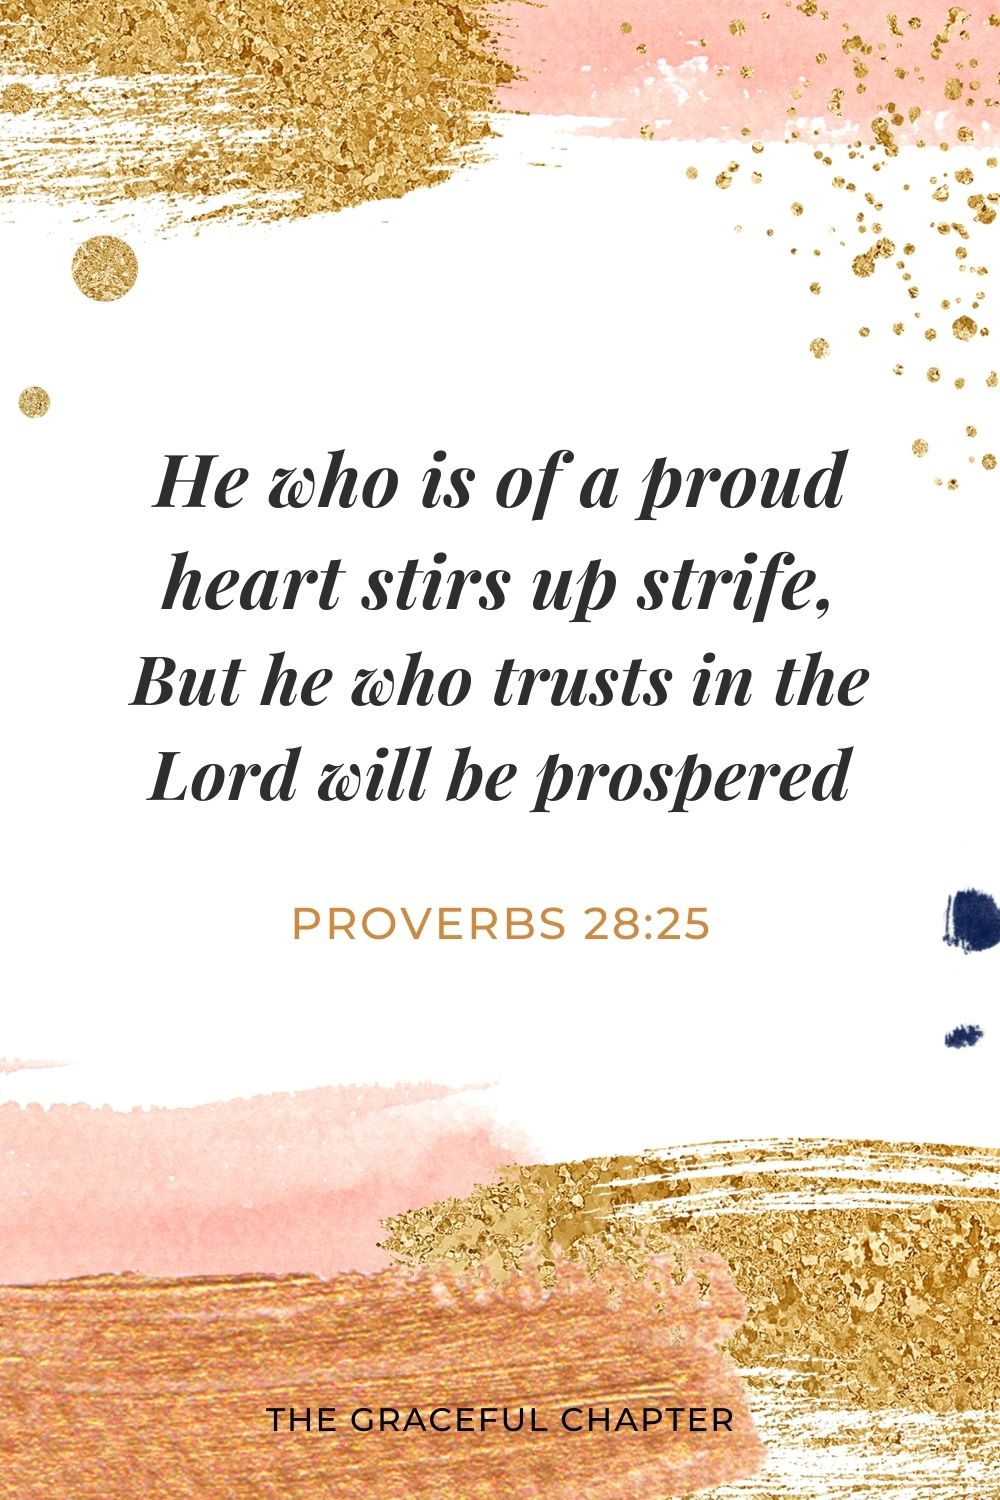 He who is of a proud heart stirs up strife, But he who trusts in the Lord will be prospered. Proverbs 28:25